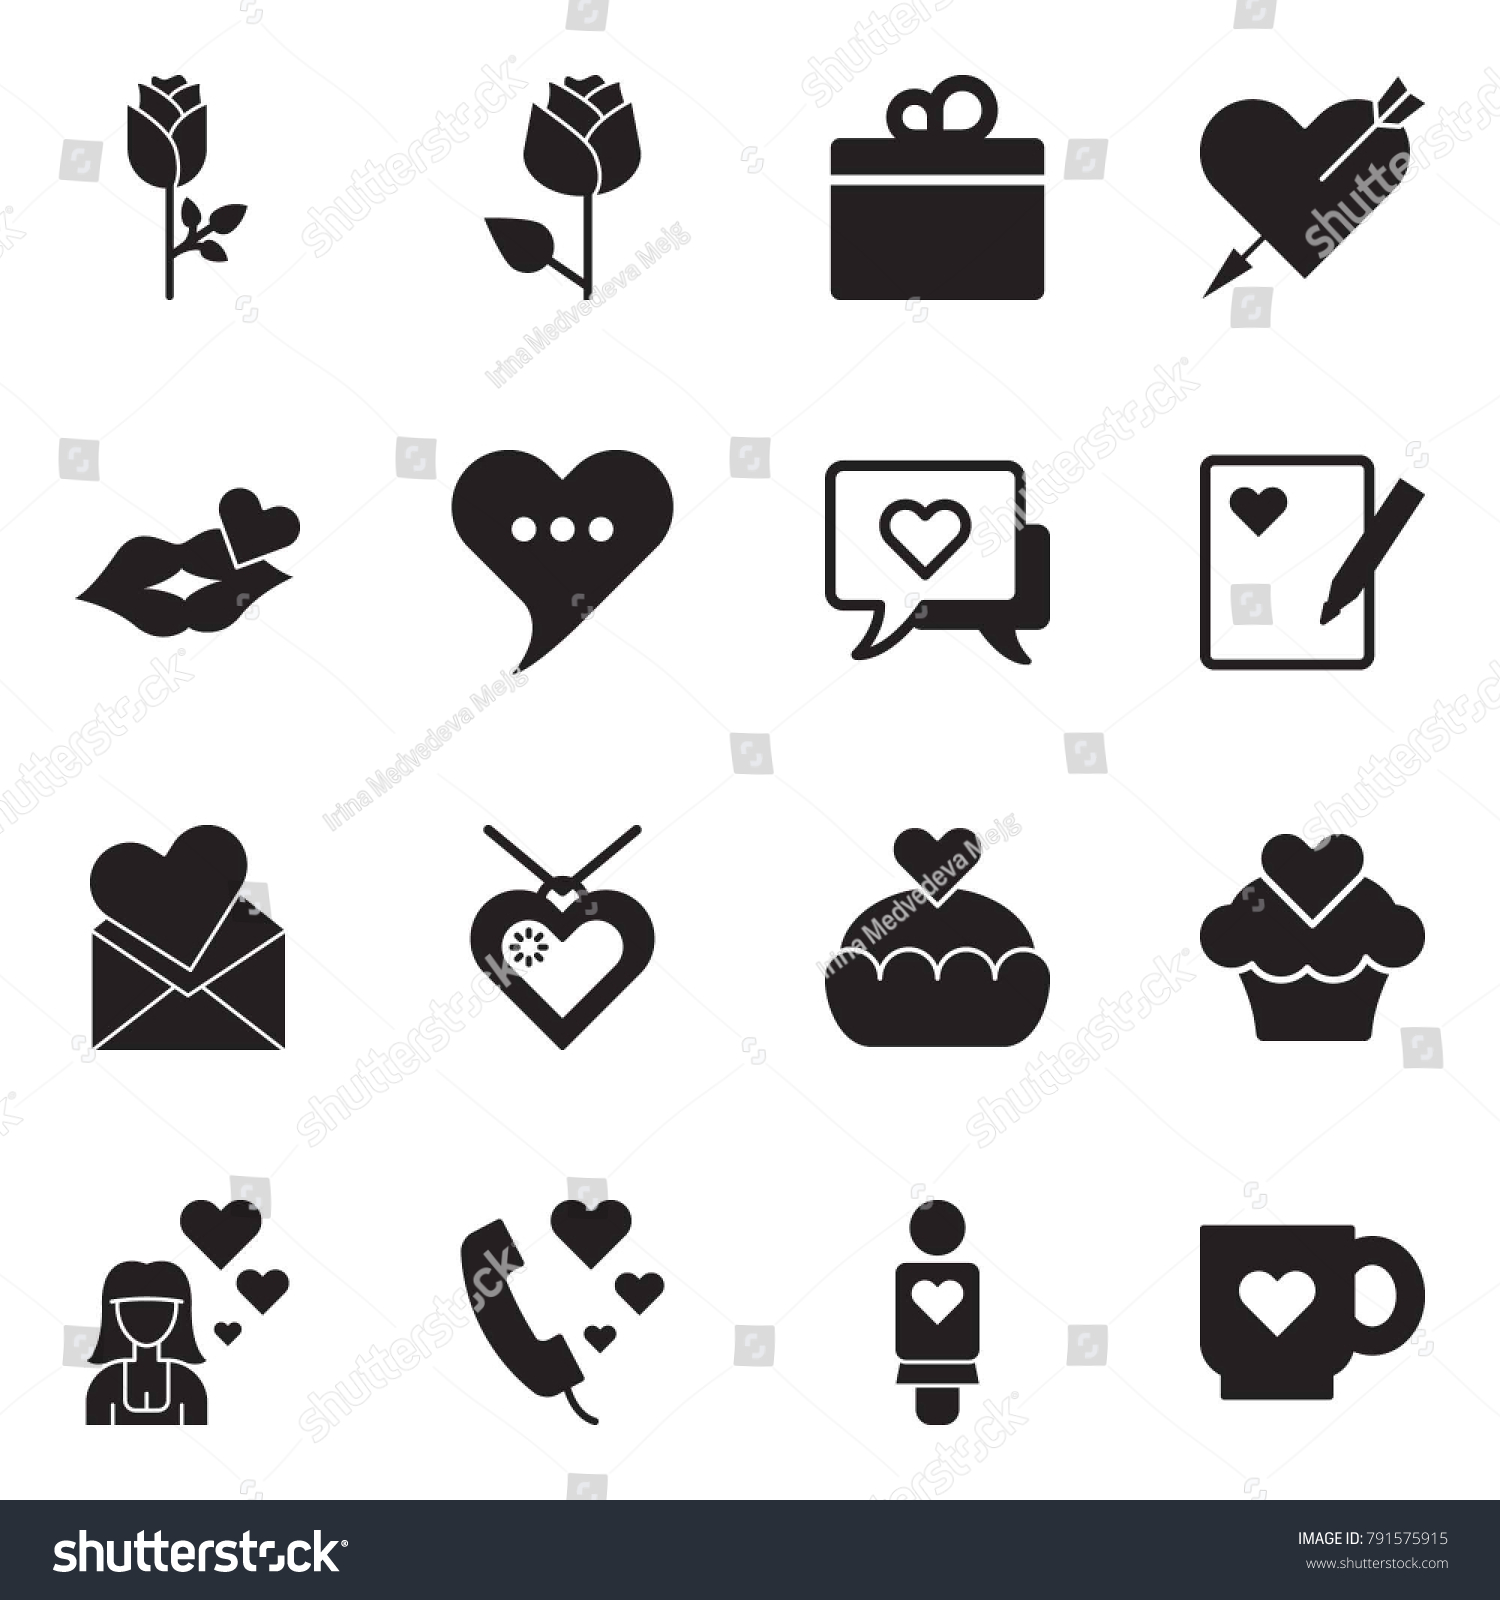 Kiss message symbol gallery symbol and sign ideas solid black vector icon set rose stock vector 791575915 shutterstock solid black vector icon set rose biocorpaavc